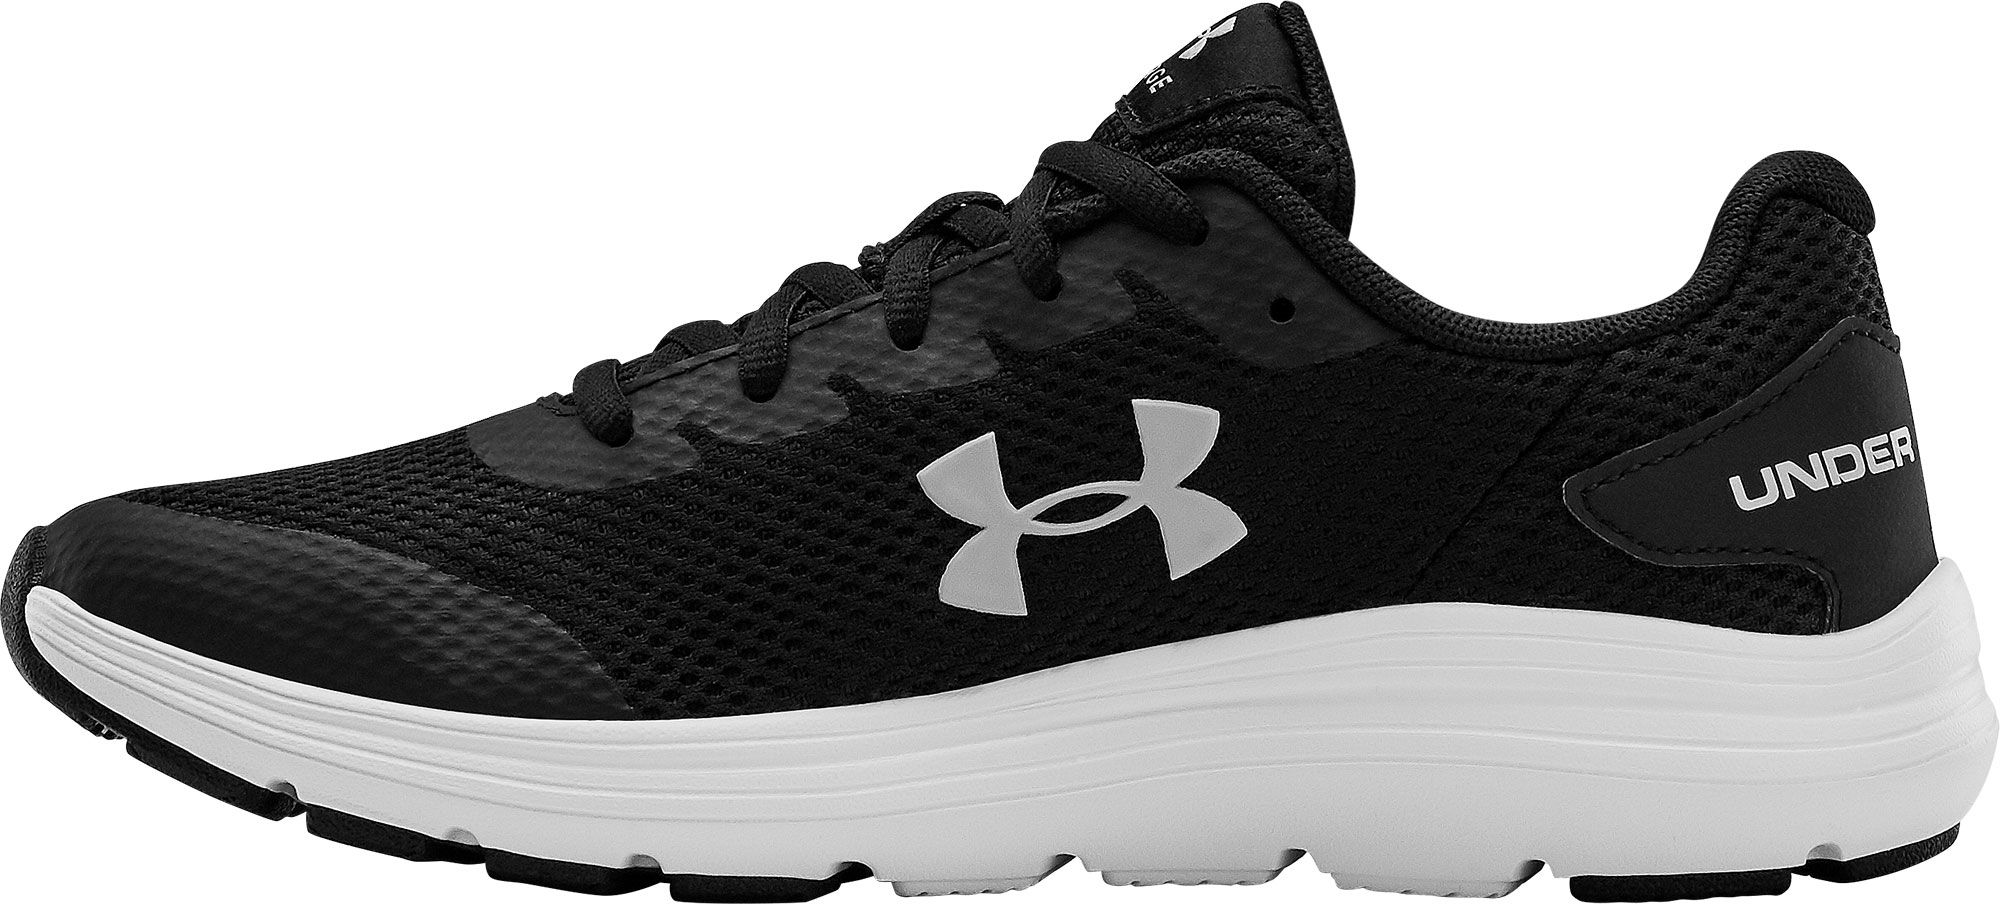 Under Armour Surge 2 Running Shoes